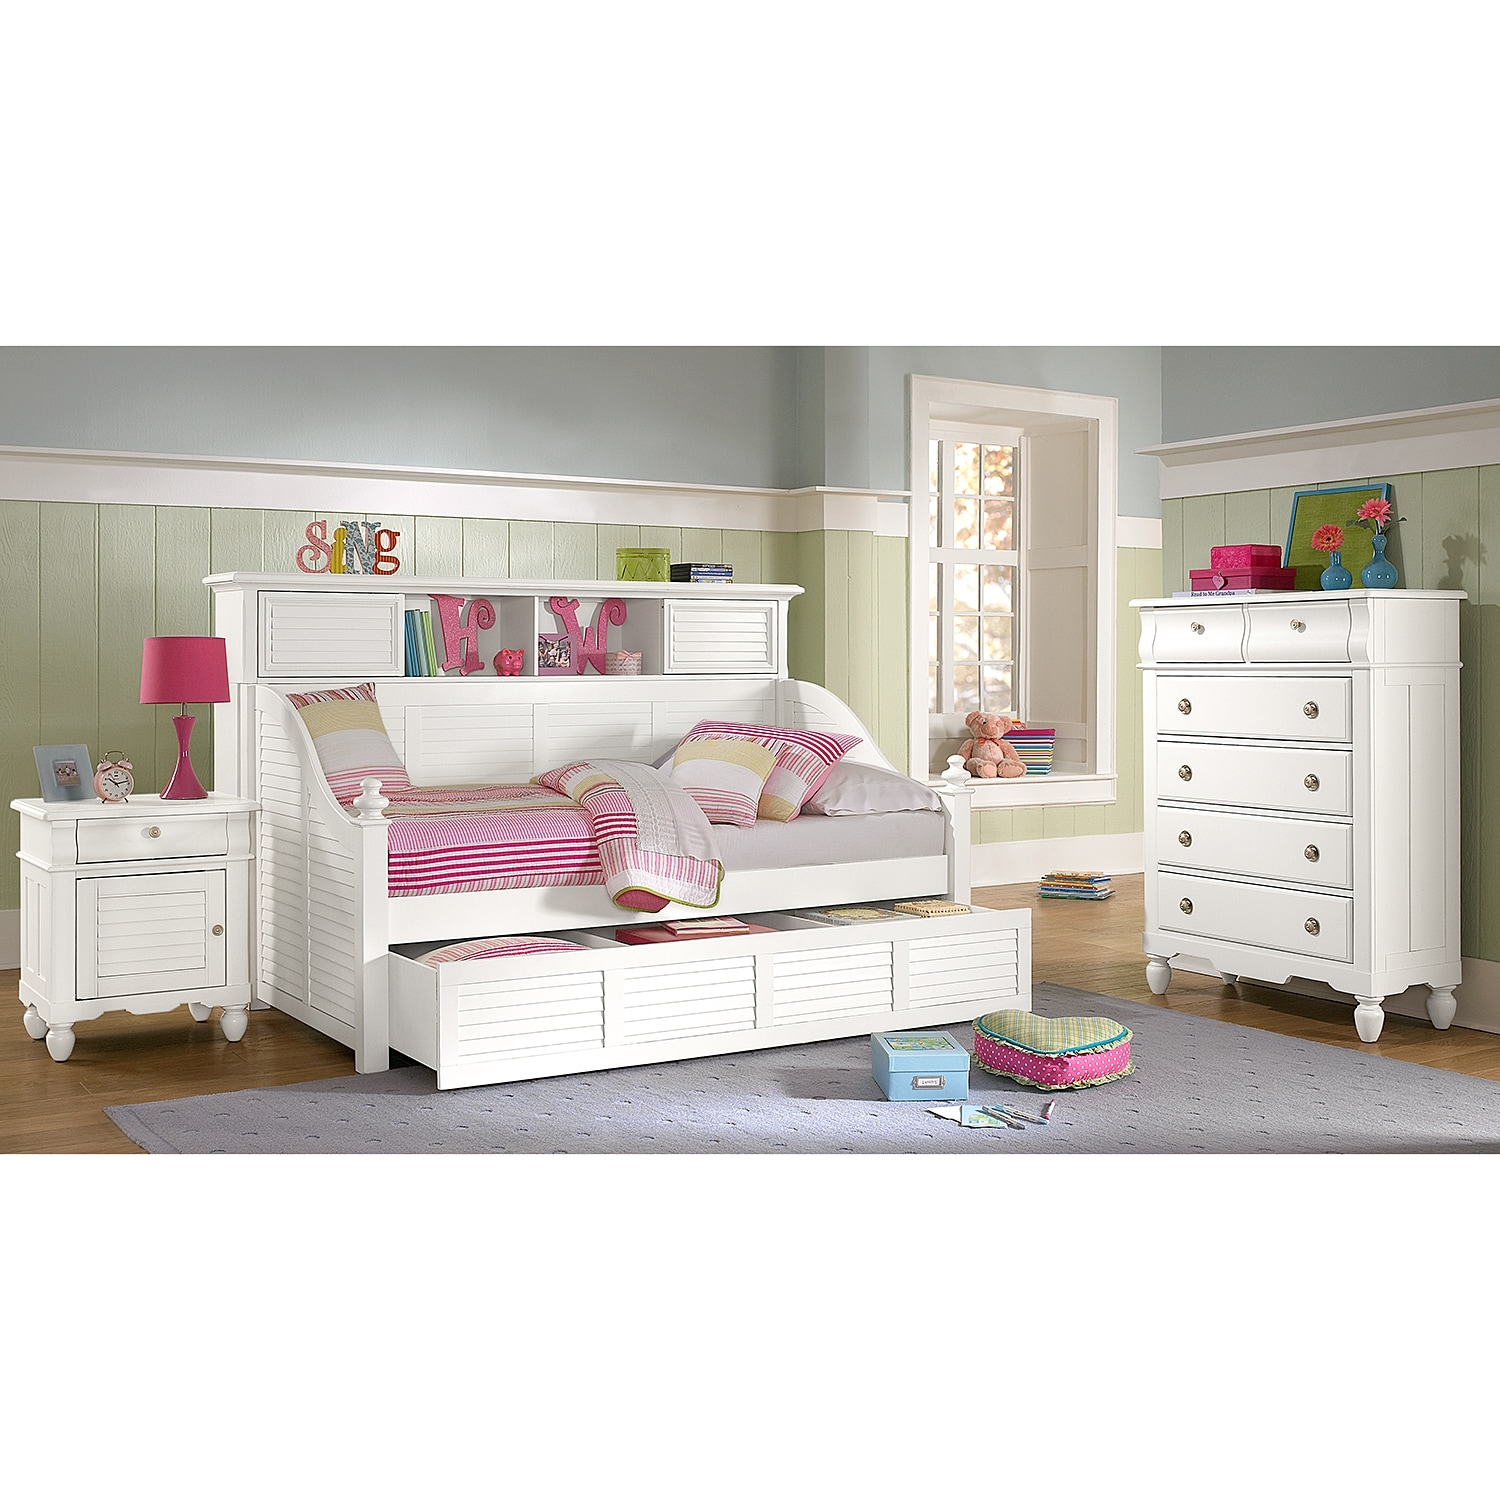 Click to change image. - Seaside Twin Bookcase Daybed With Trundle - White Value City